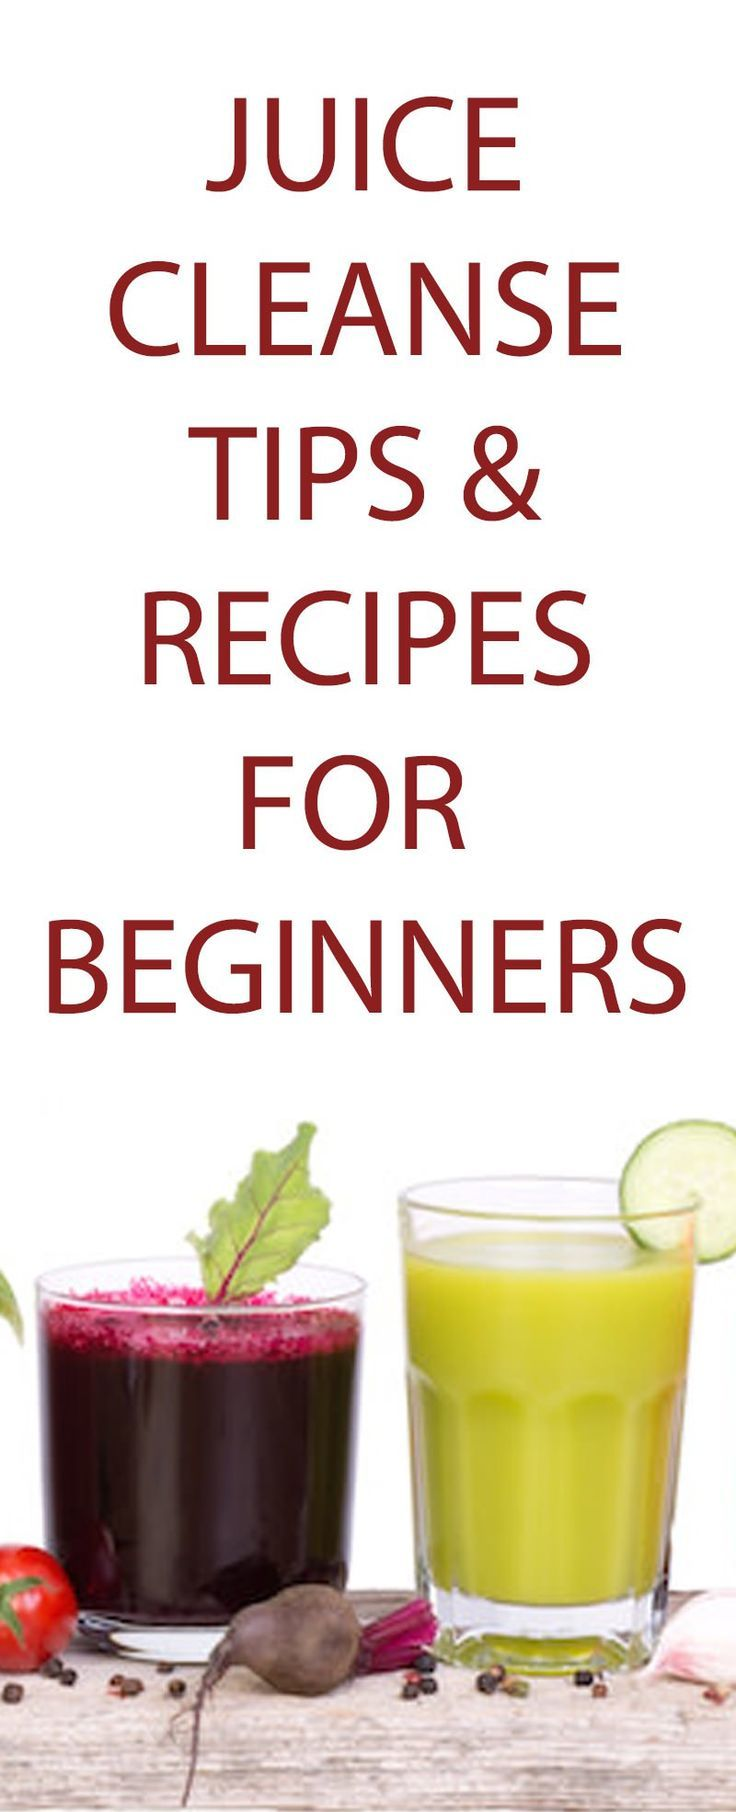 Oltre 25 fantastiche idee su blueprint cleanse su pinterest want to start a juice cleanse read our juice cleanse tips and check out our malvernweather Choice Image